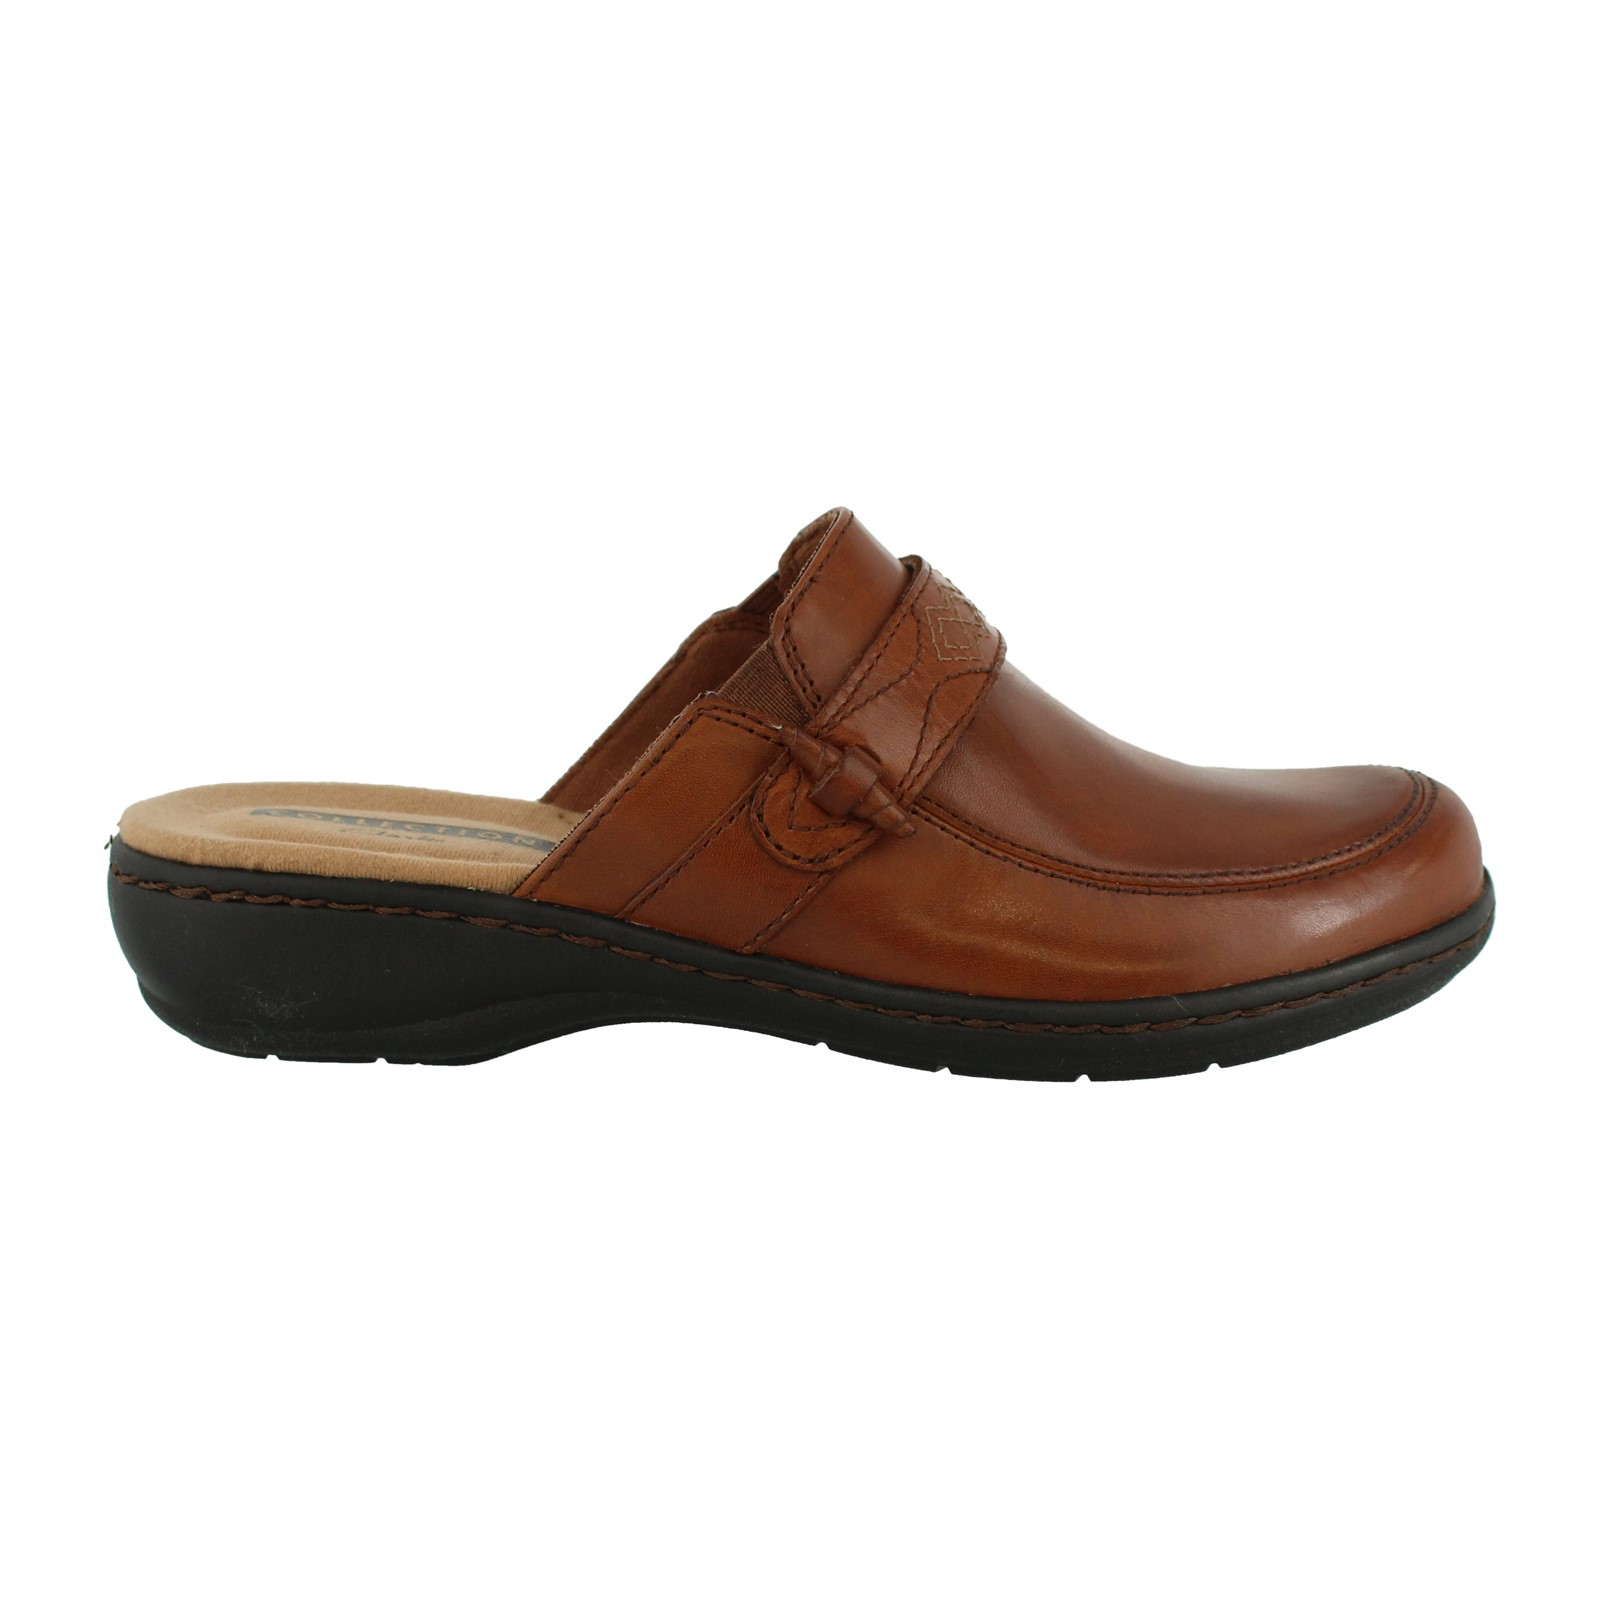 Women's Clarks, Leisa Dream Mule